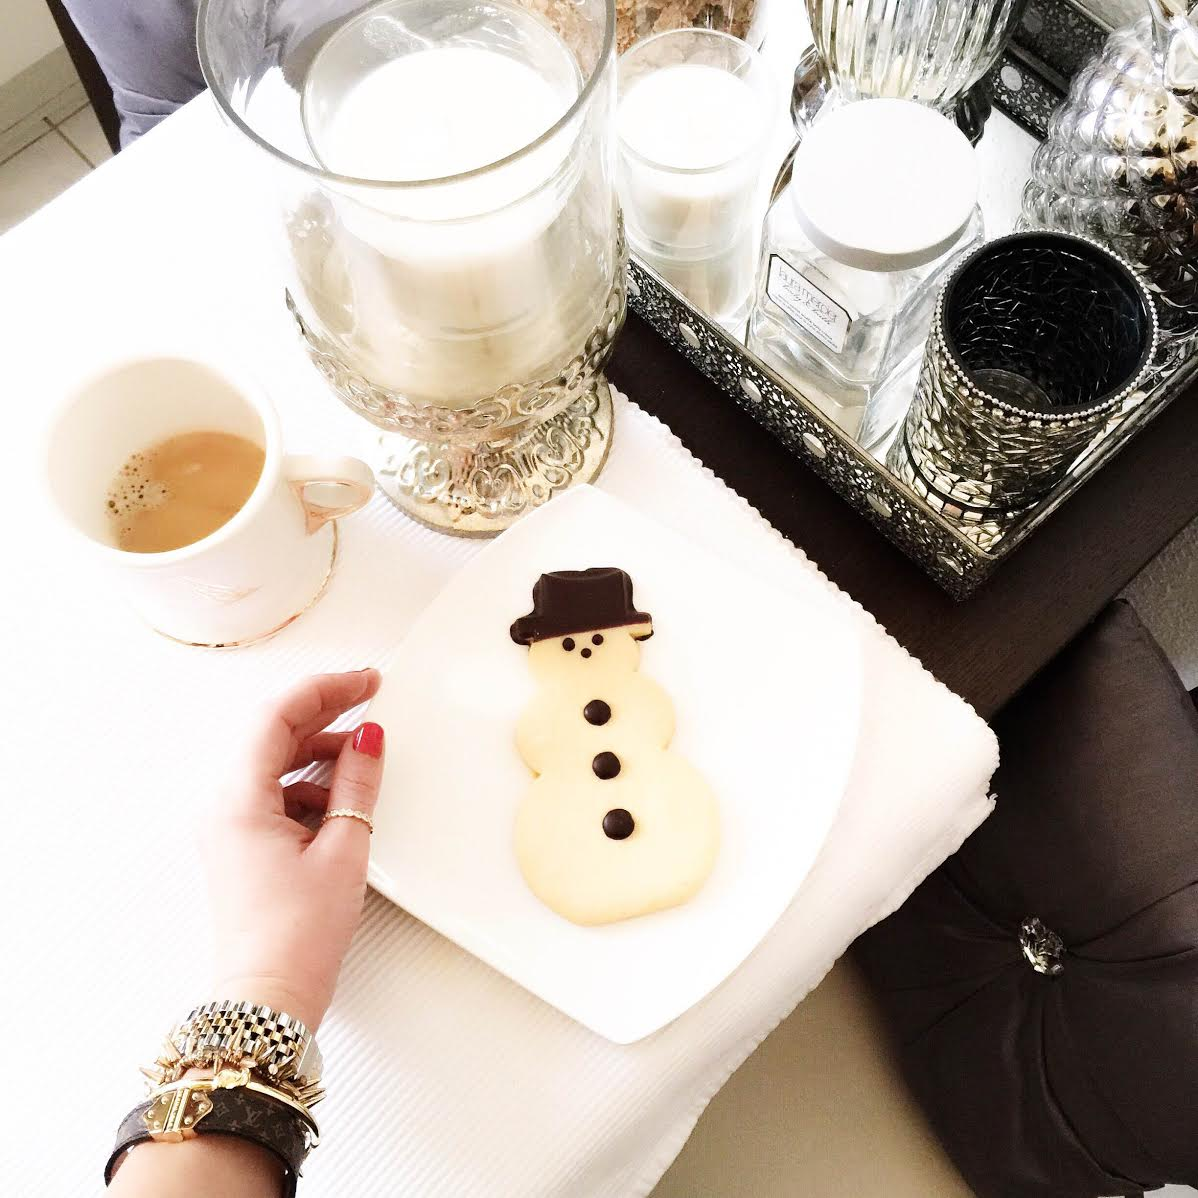 snowman-armparty-louis-vuitton-bracelet-kate-spade-michaelkors-fashionhippieloves-kitchen